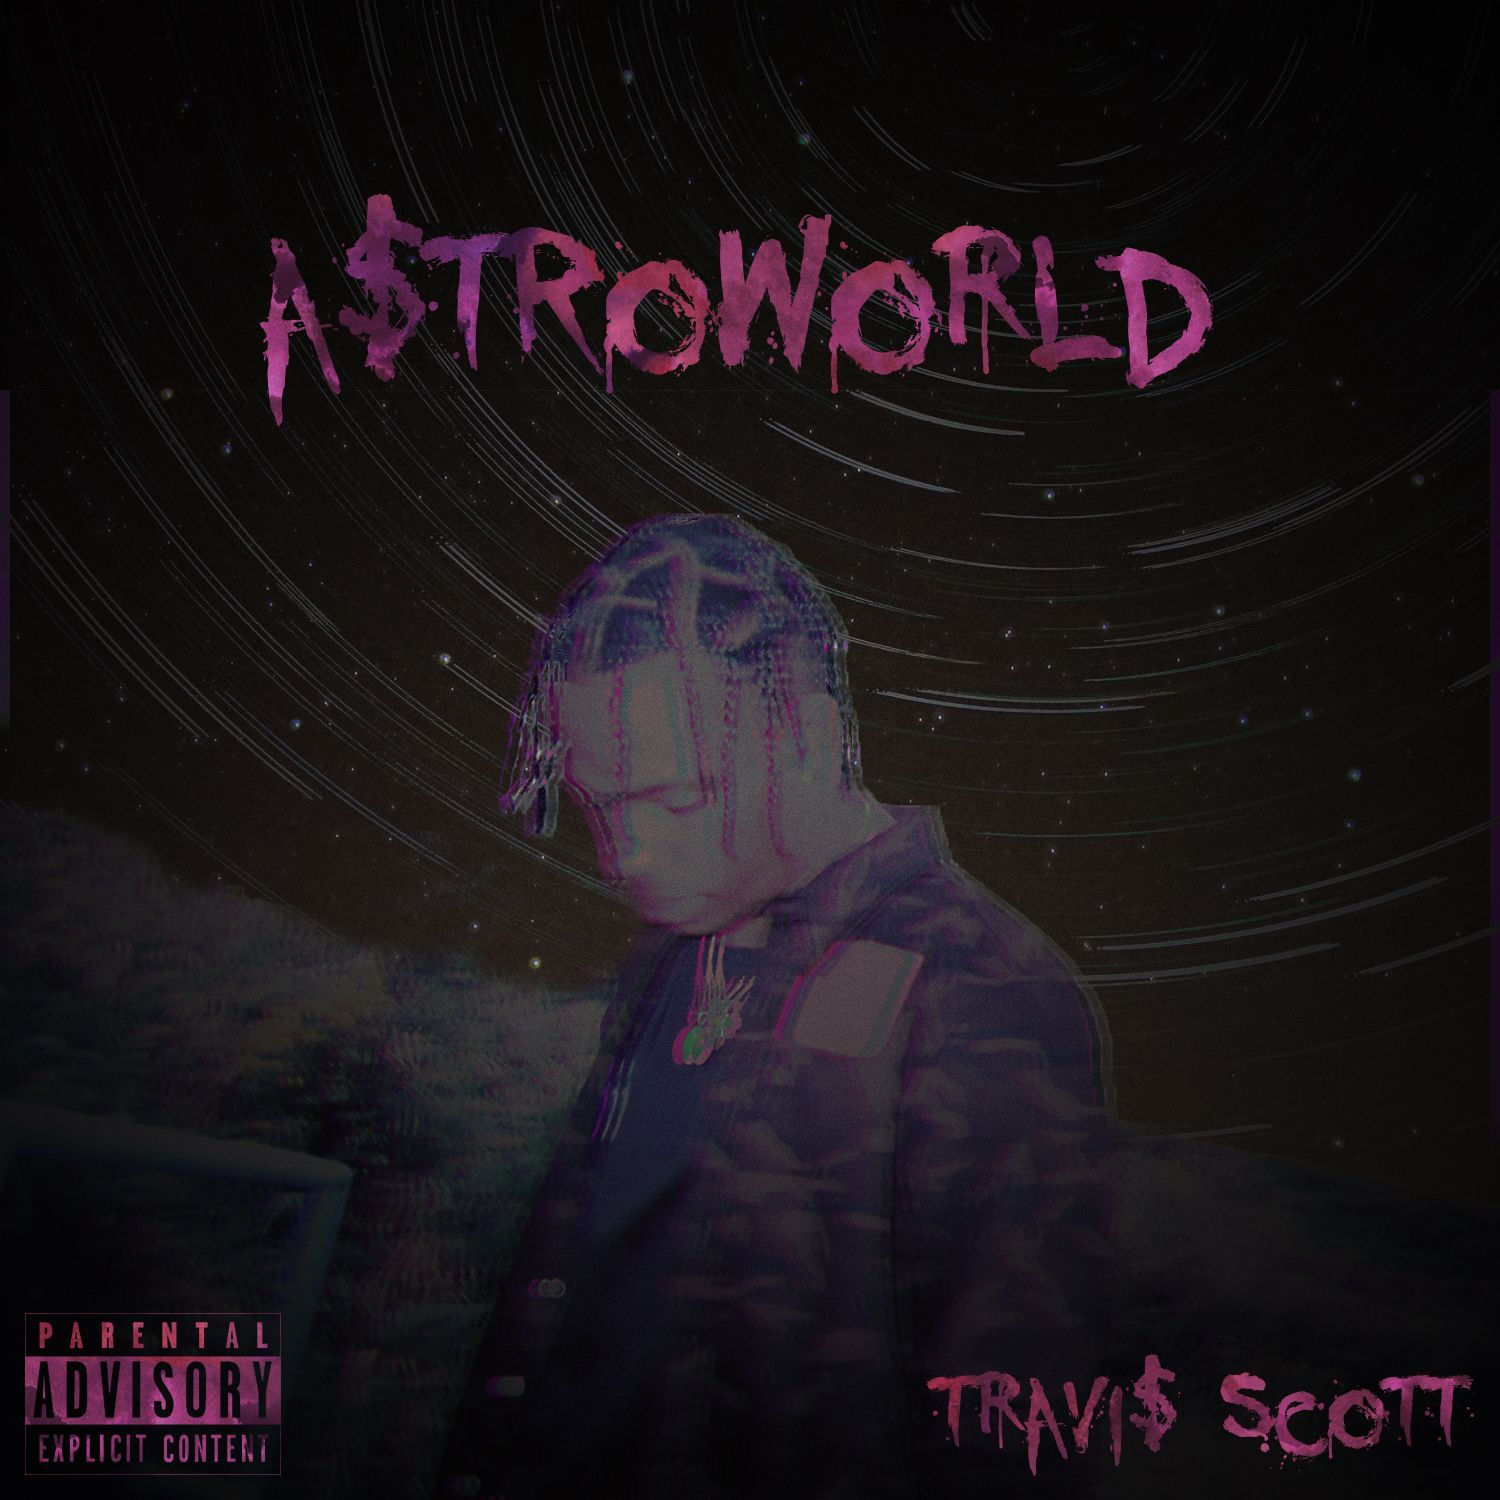 Astroworld Travis Scott hd